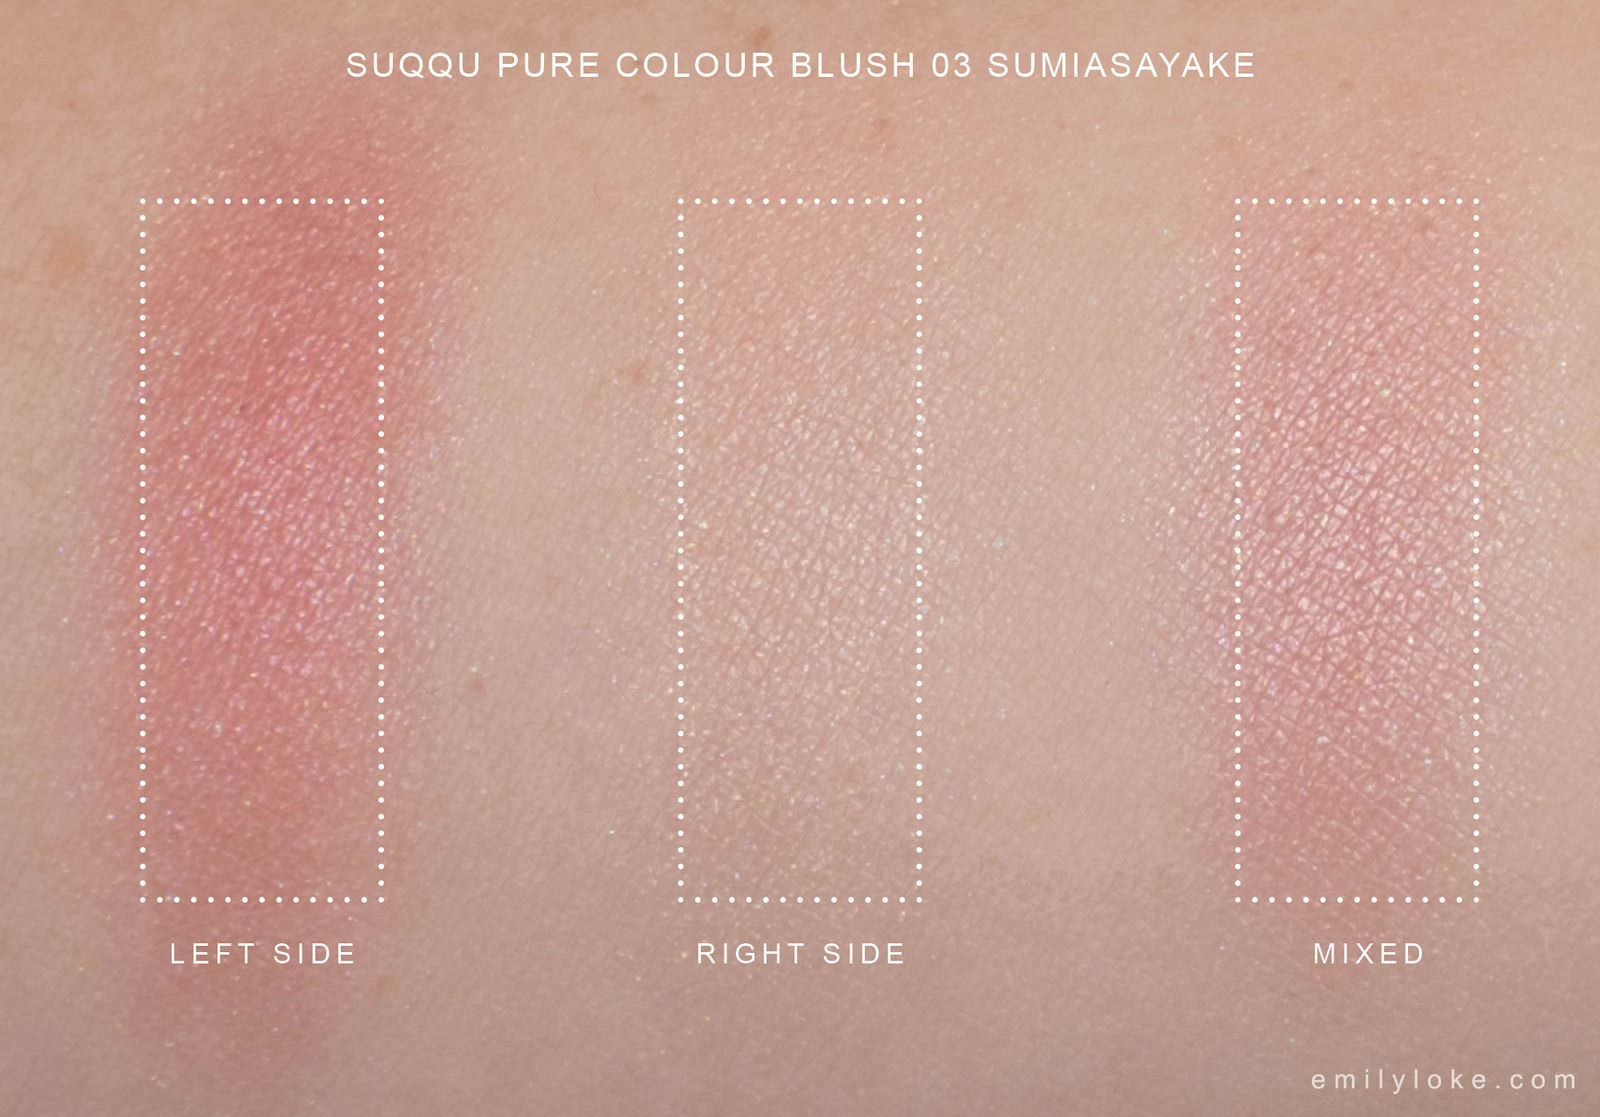 suqqu pure colour blush 03 sumiasayake